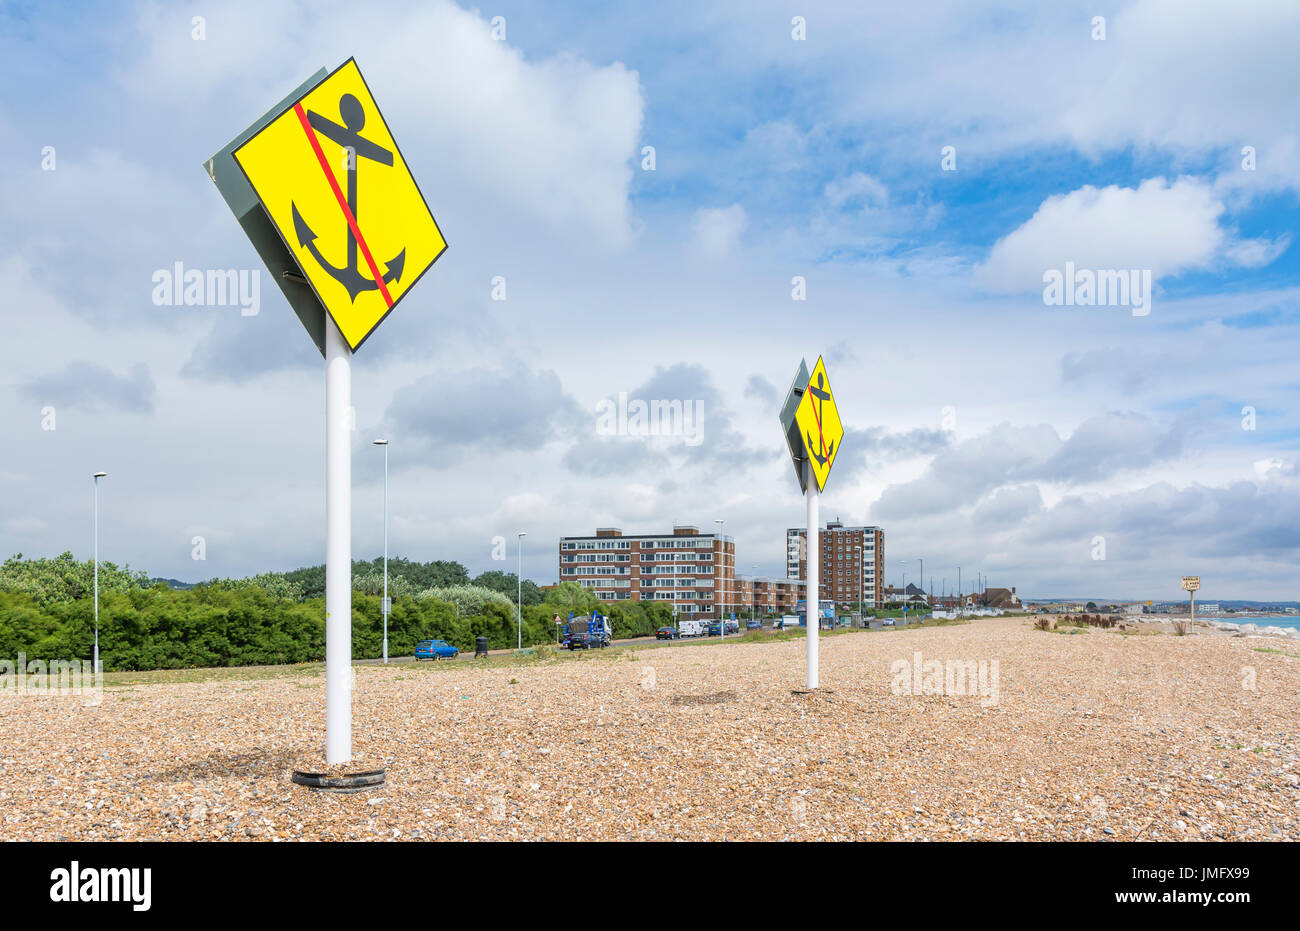 No anchor warning signs where underwater power cables are laid on the South Coast of England, where the power cables from the wind farm come ashore. - Stock Image